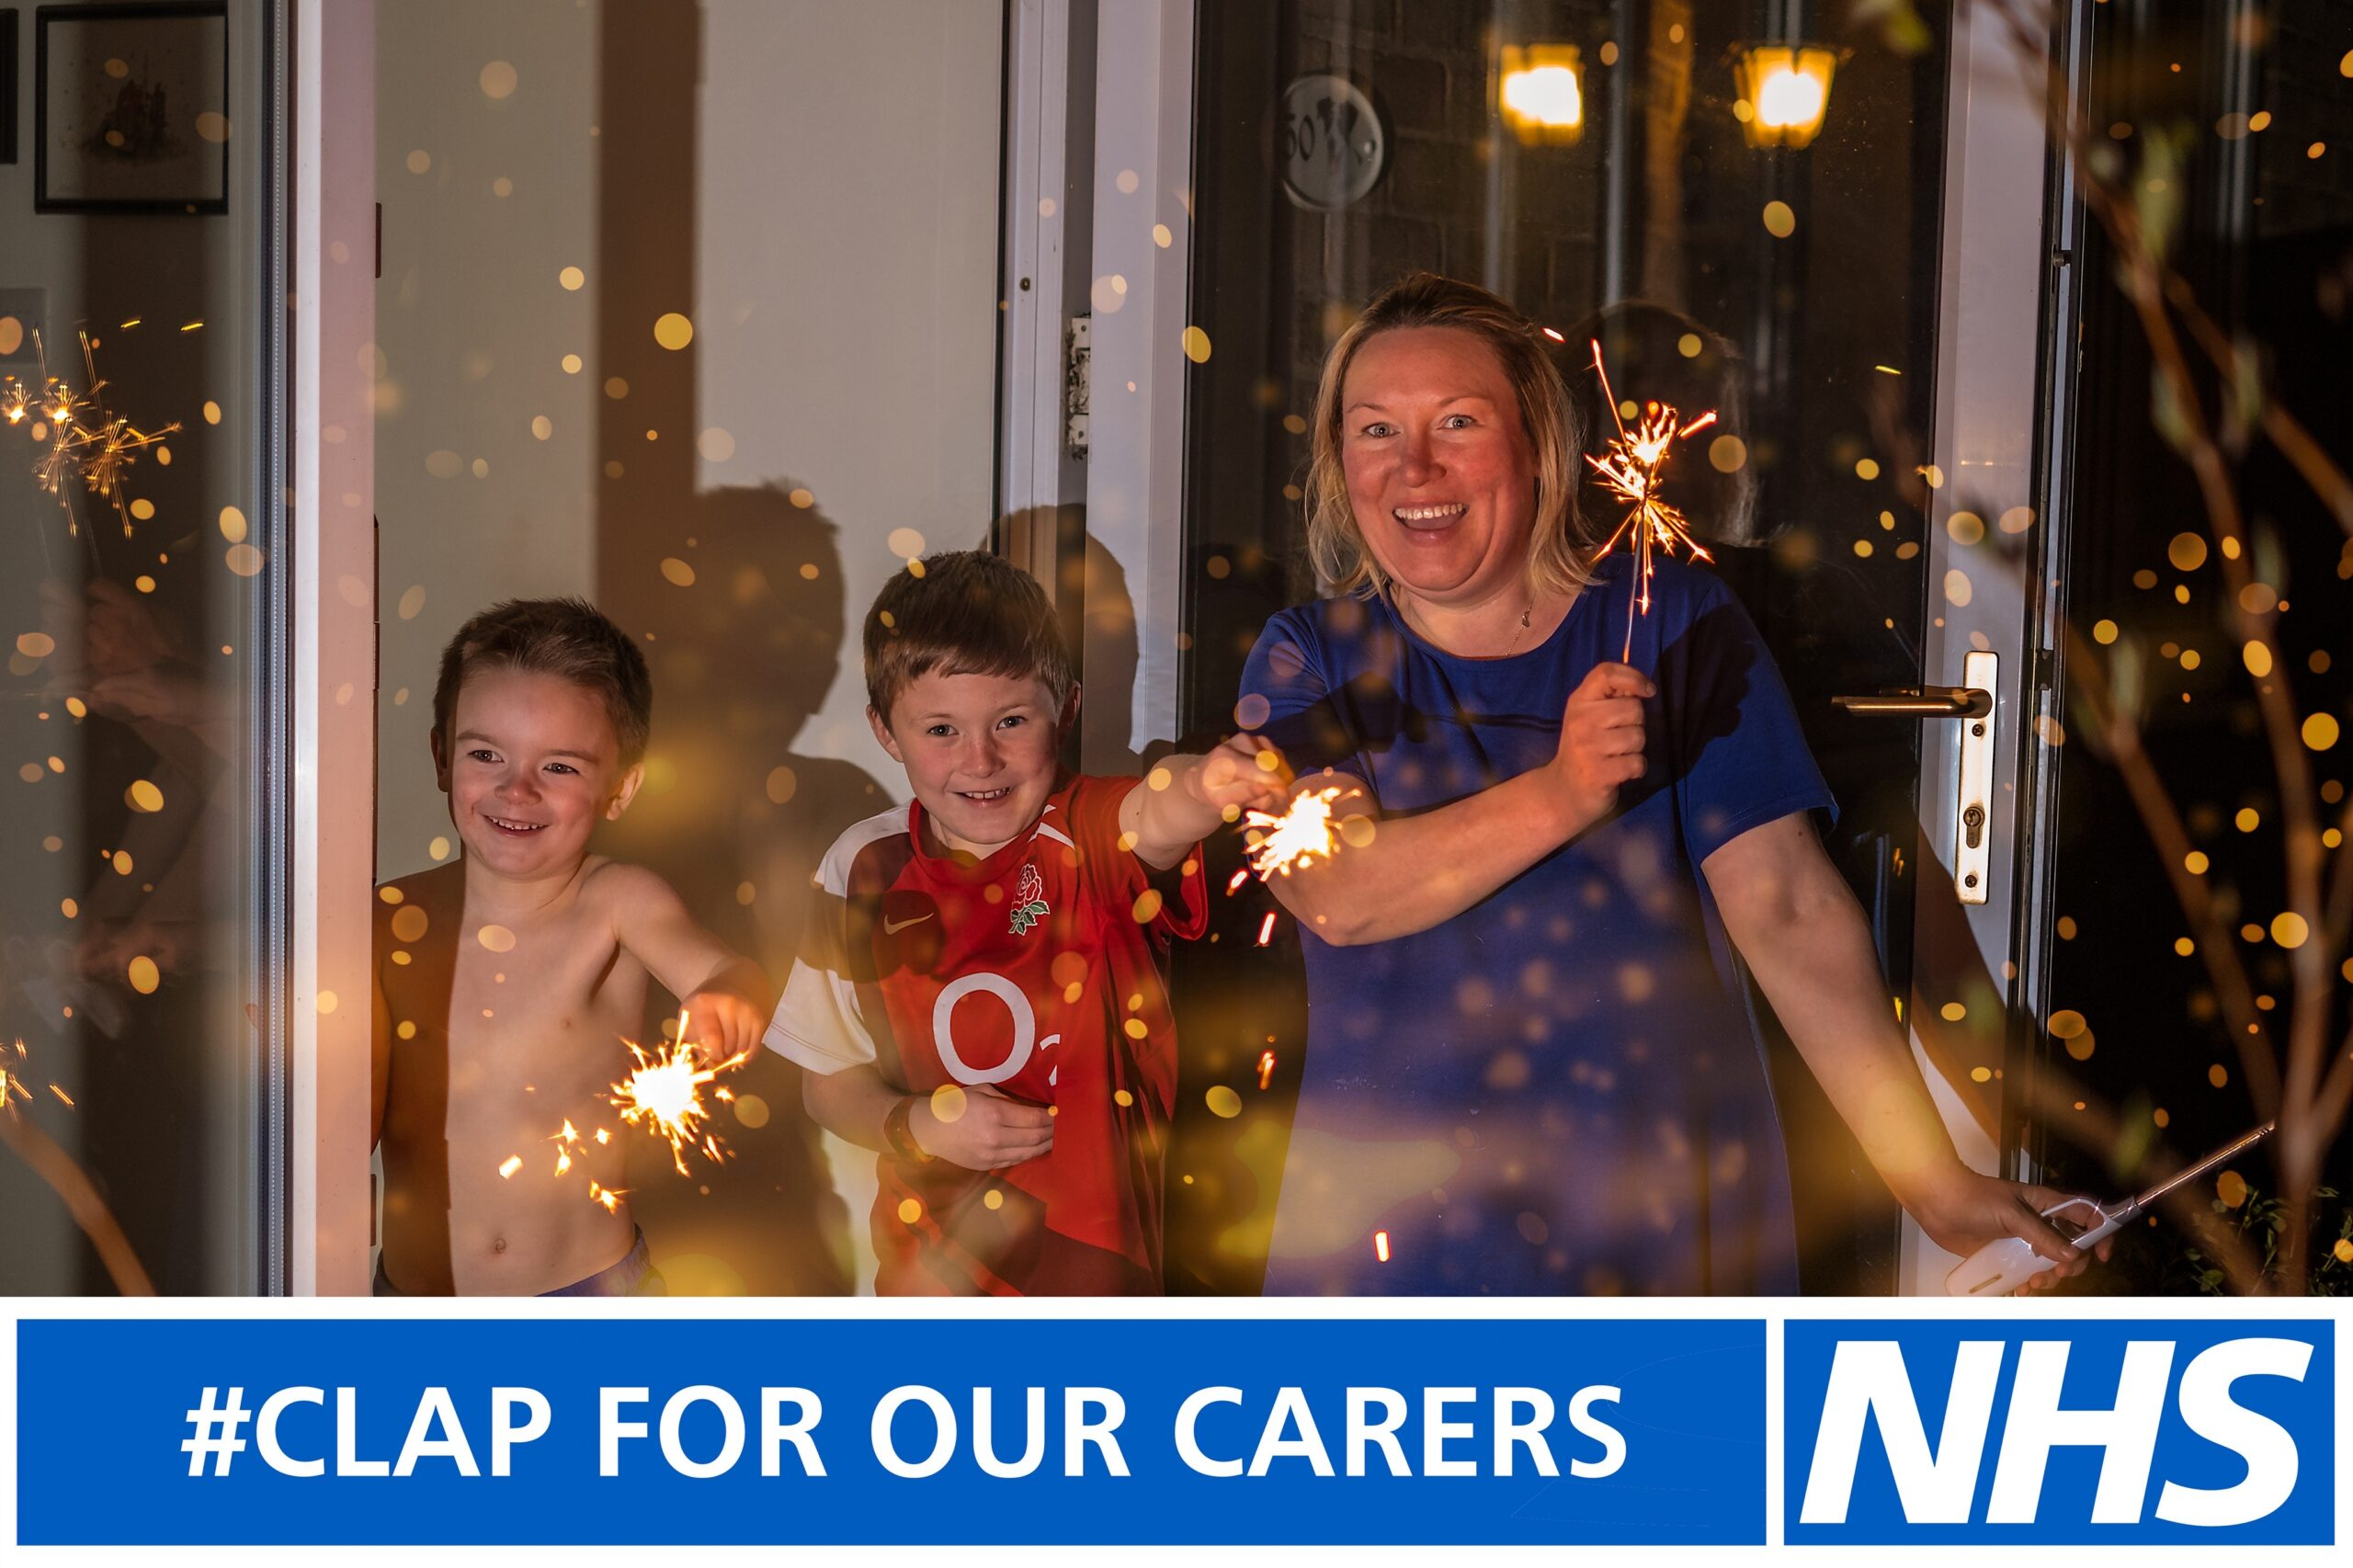 Hull urged to #ClapForOurCarers to celebrate NHS workers